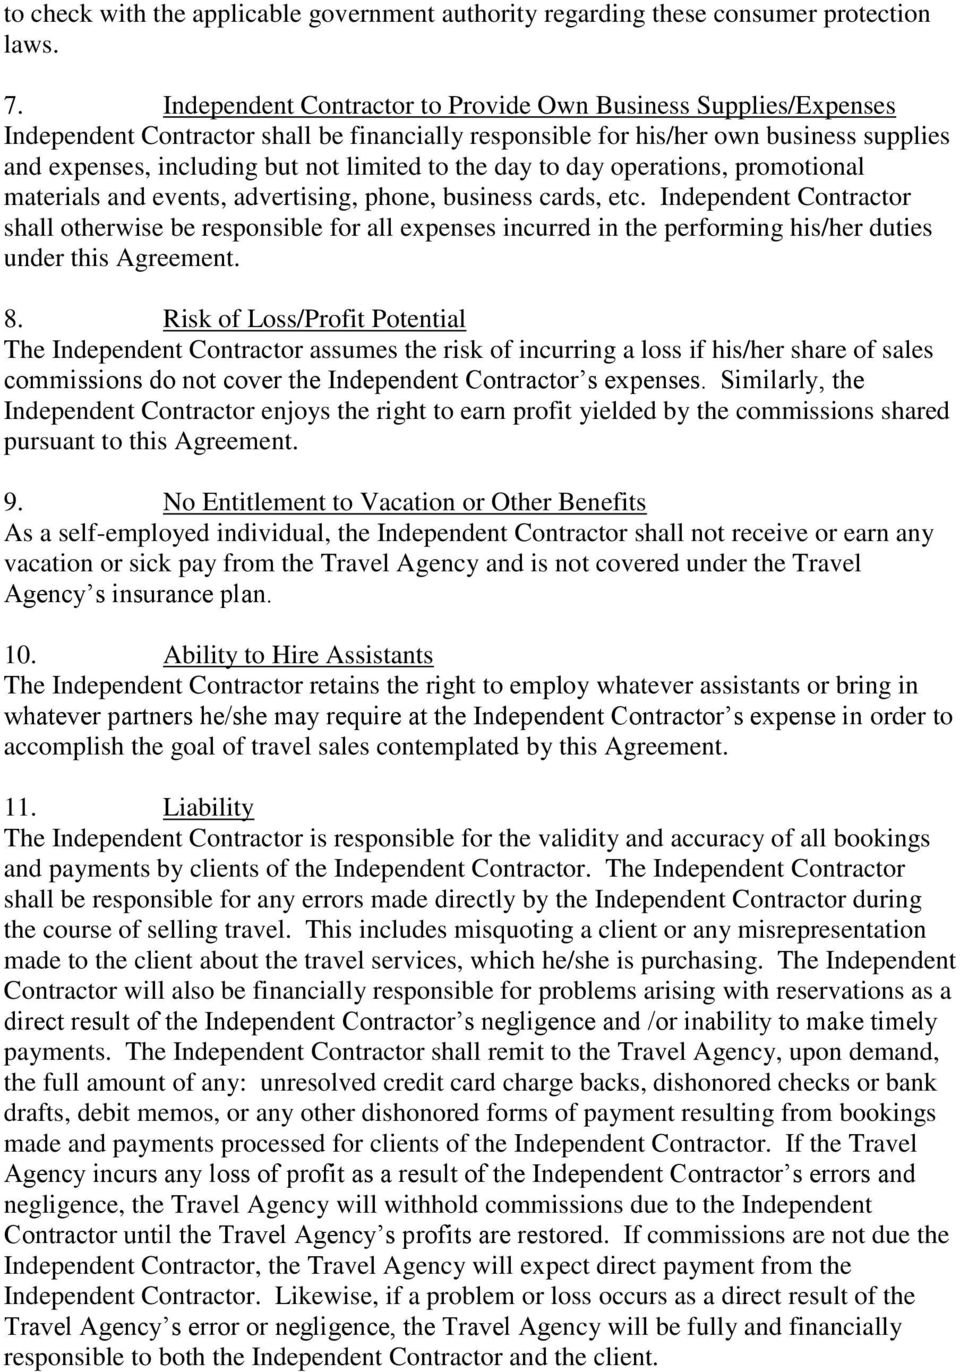 Independent Contractor Agreement Pdf